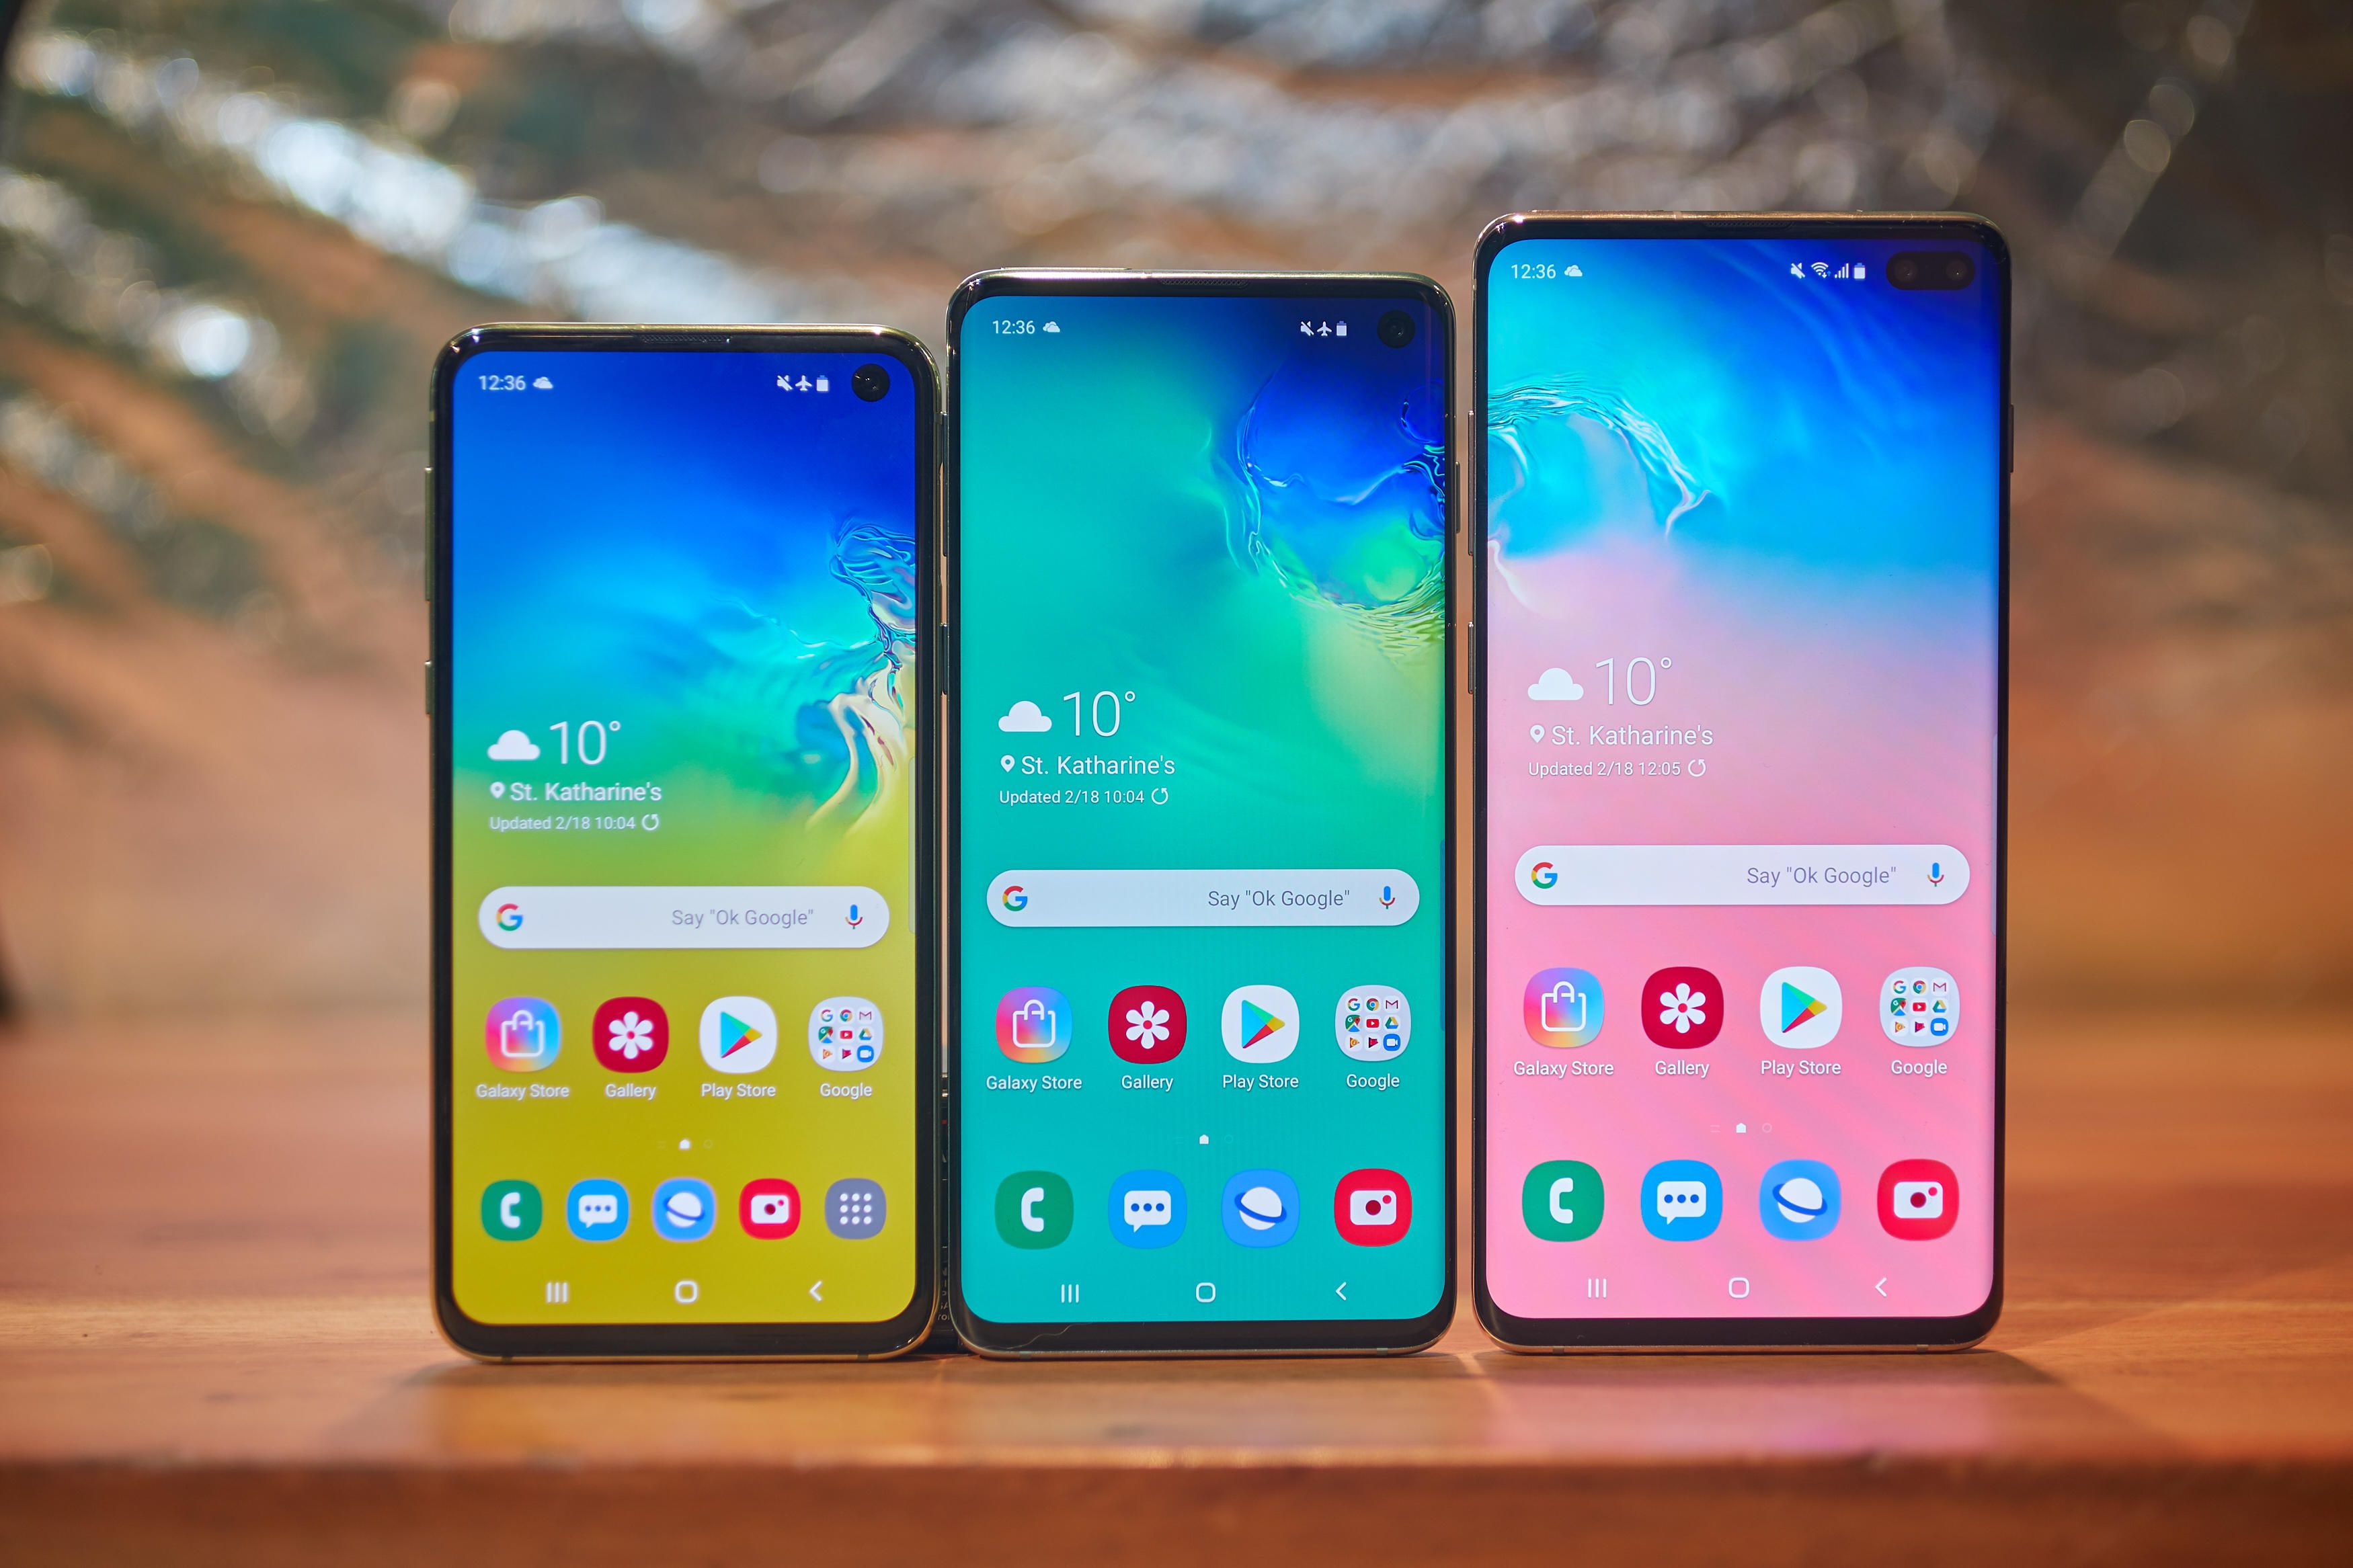 How to Unlock your Samsung Galaxy S10 / S10 Plus / S10e by Unlock